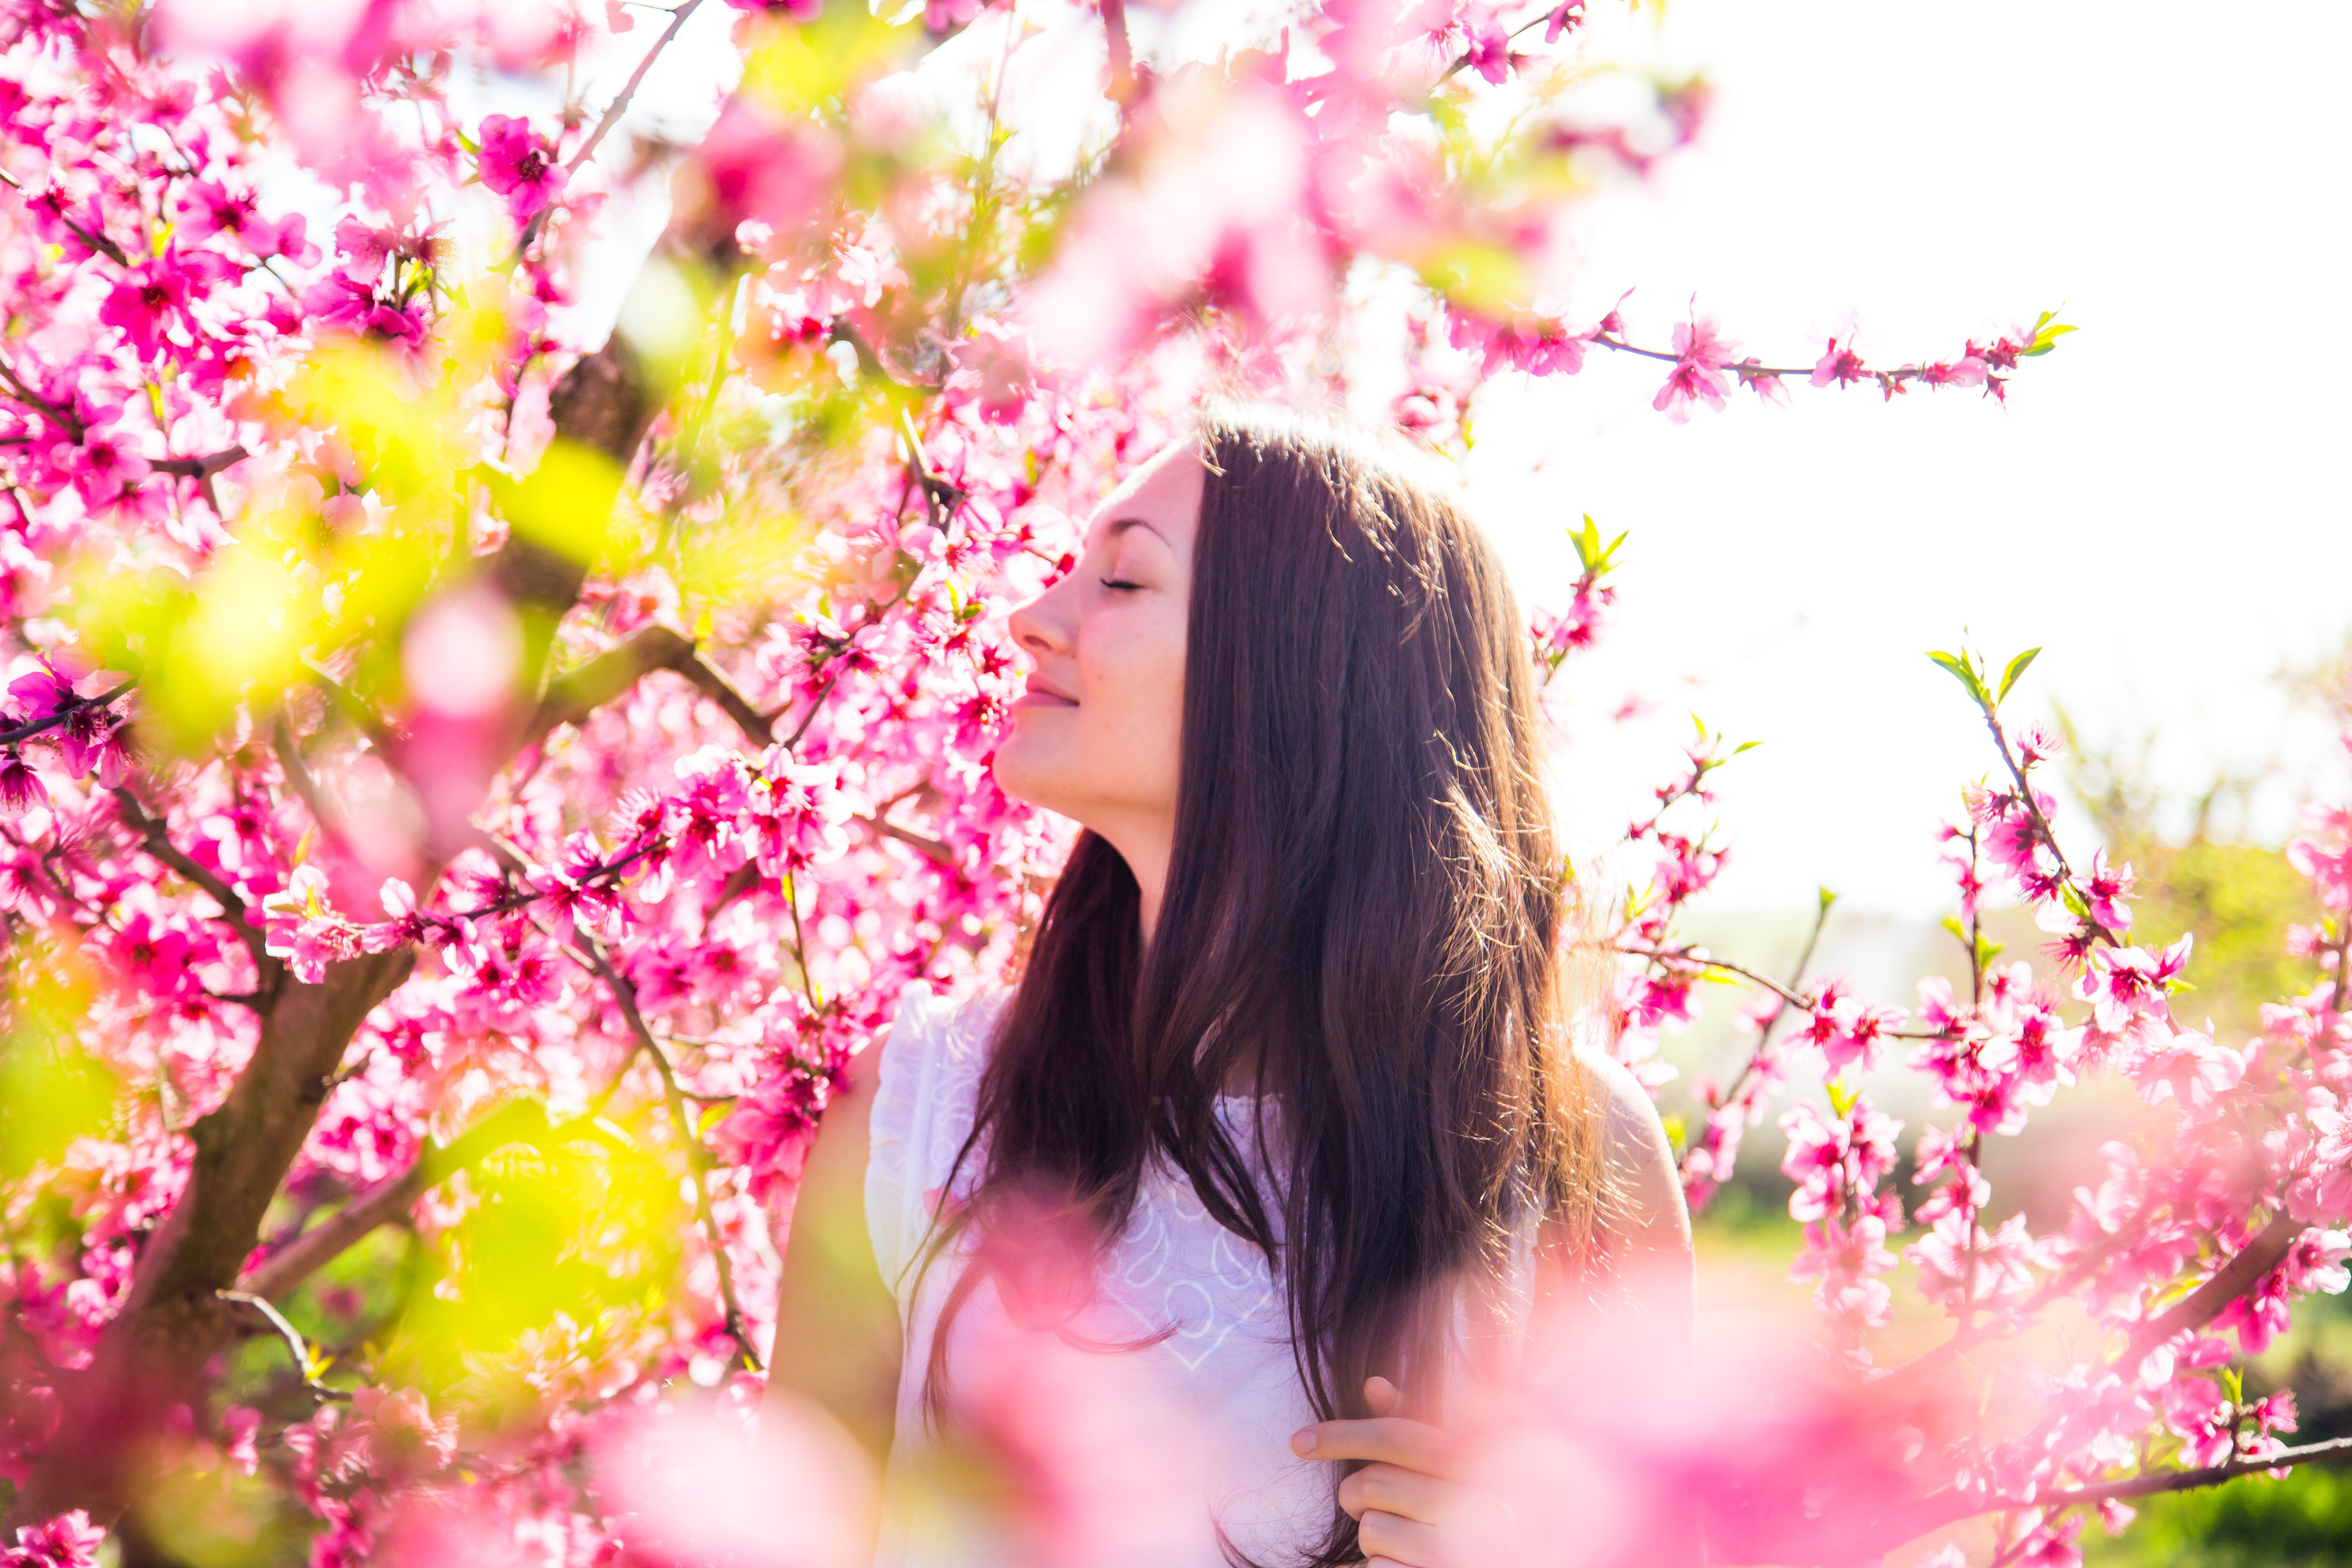 A woman smelling pink flowers on the tree